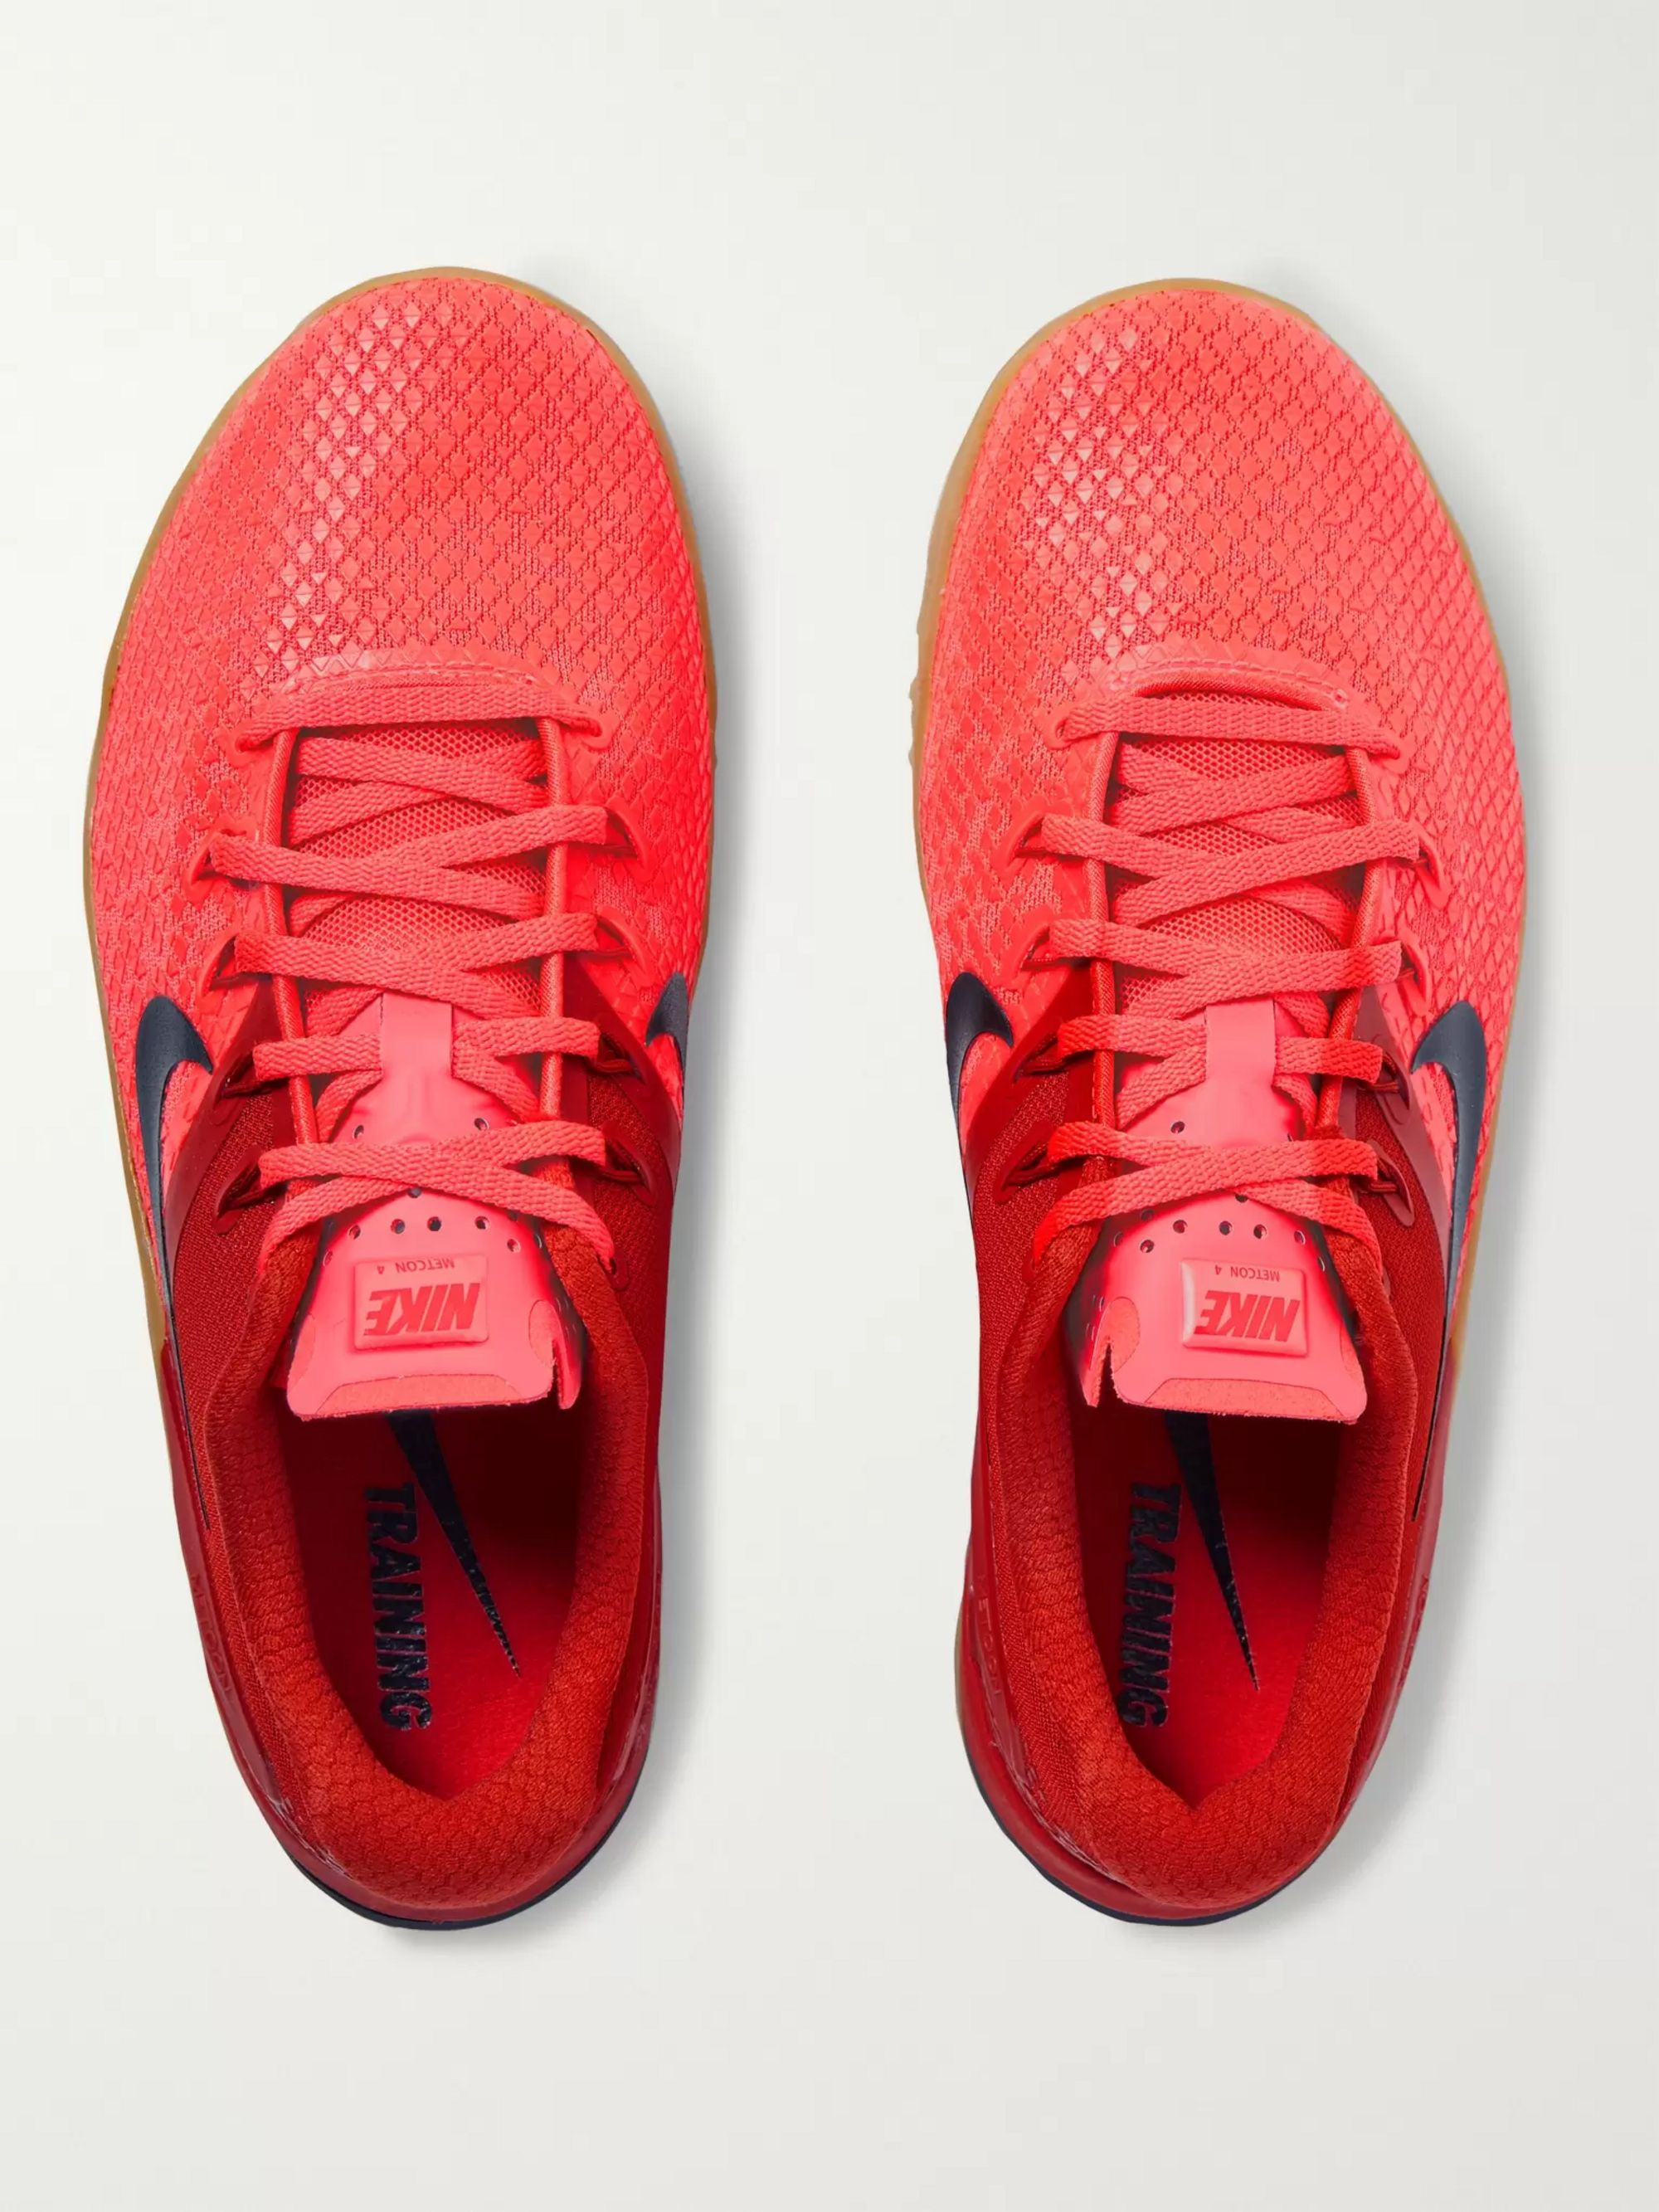 Metcon 4 XD X Rubber Trimmed Mesh Sneakers